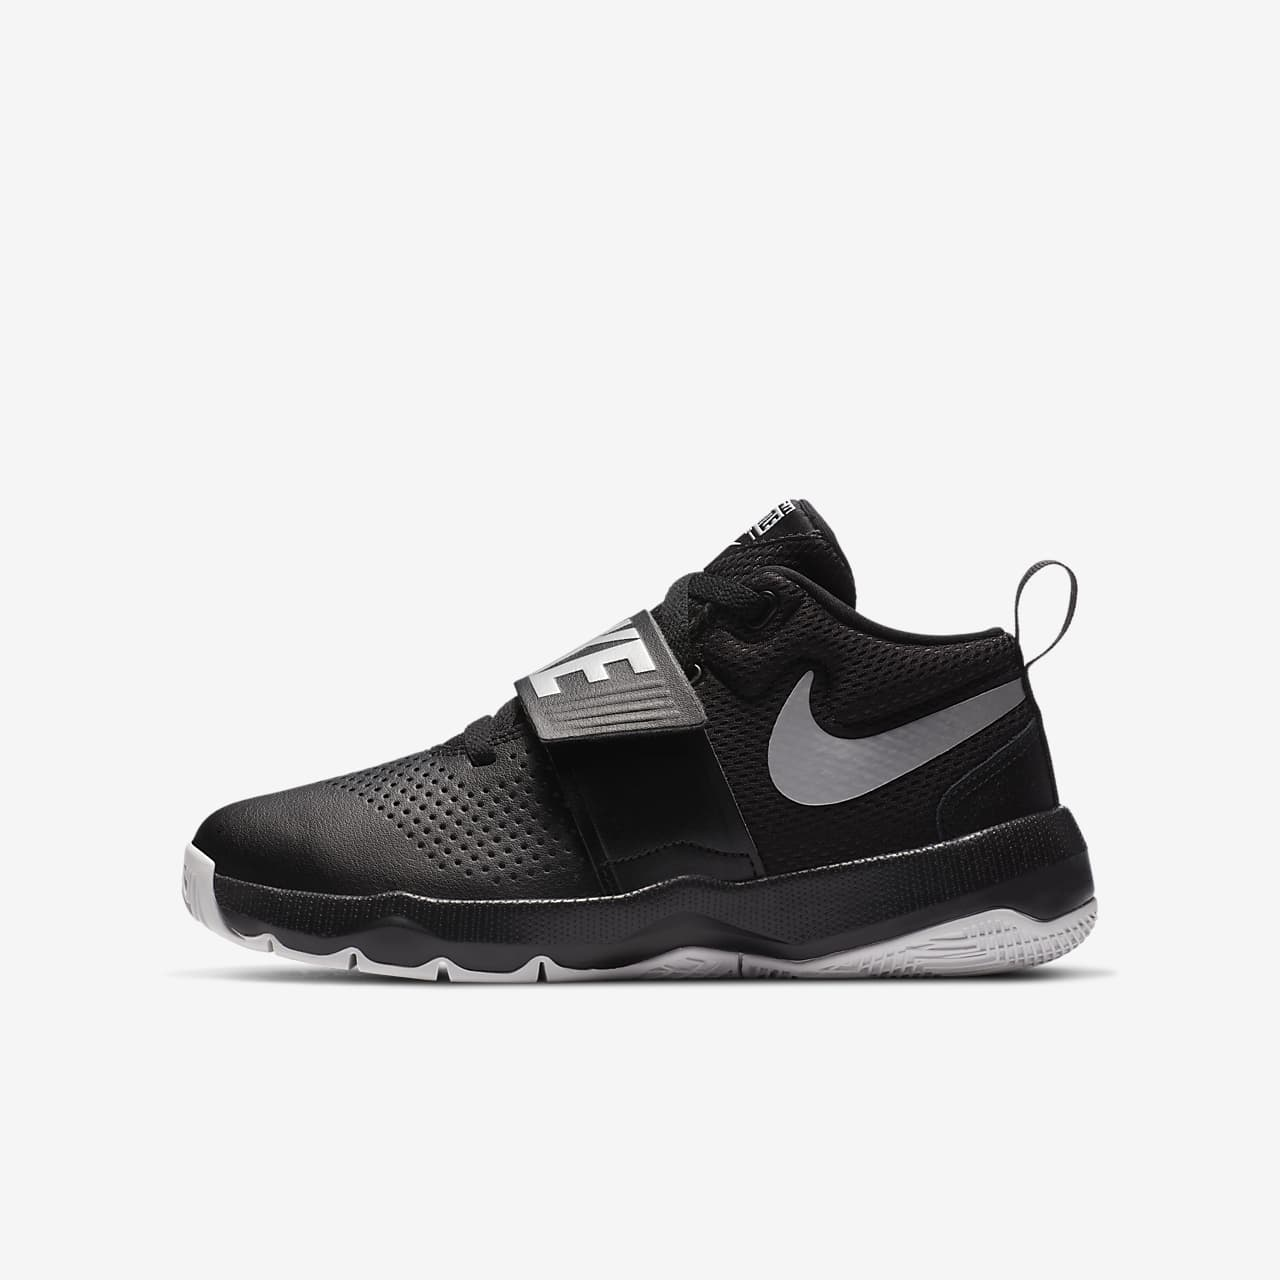 90f51f7bf812 Nike Team Hustle D 8 Big Kids  Basketball Shoe. Nike.com